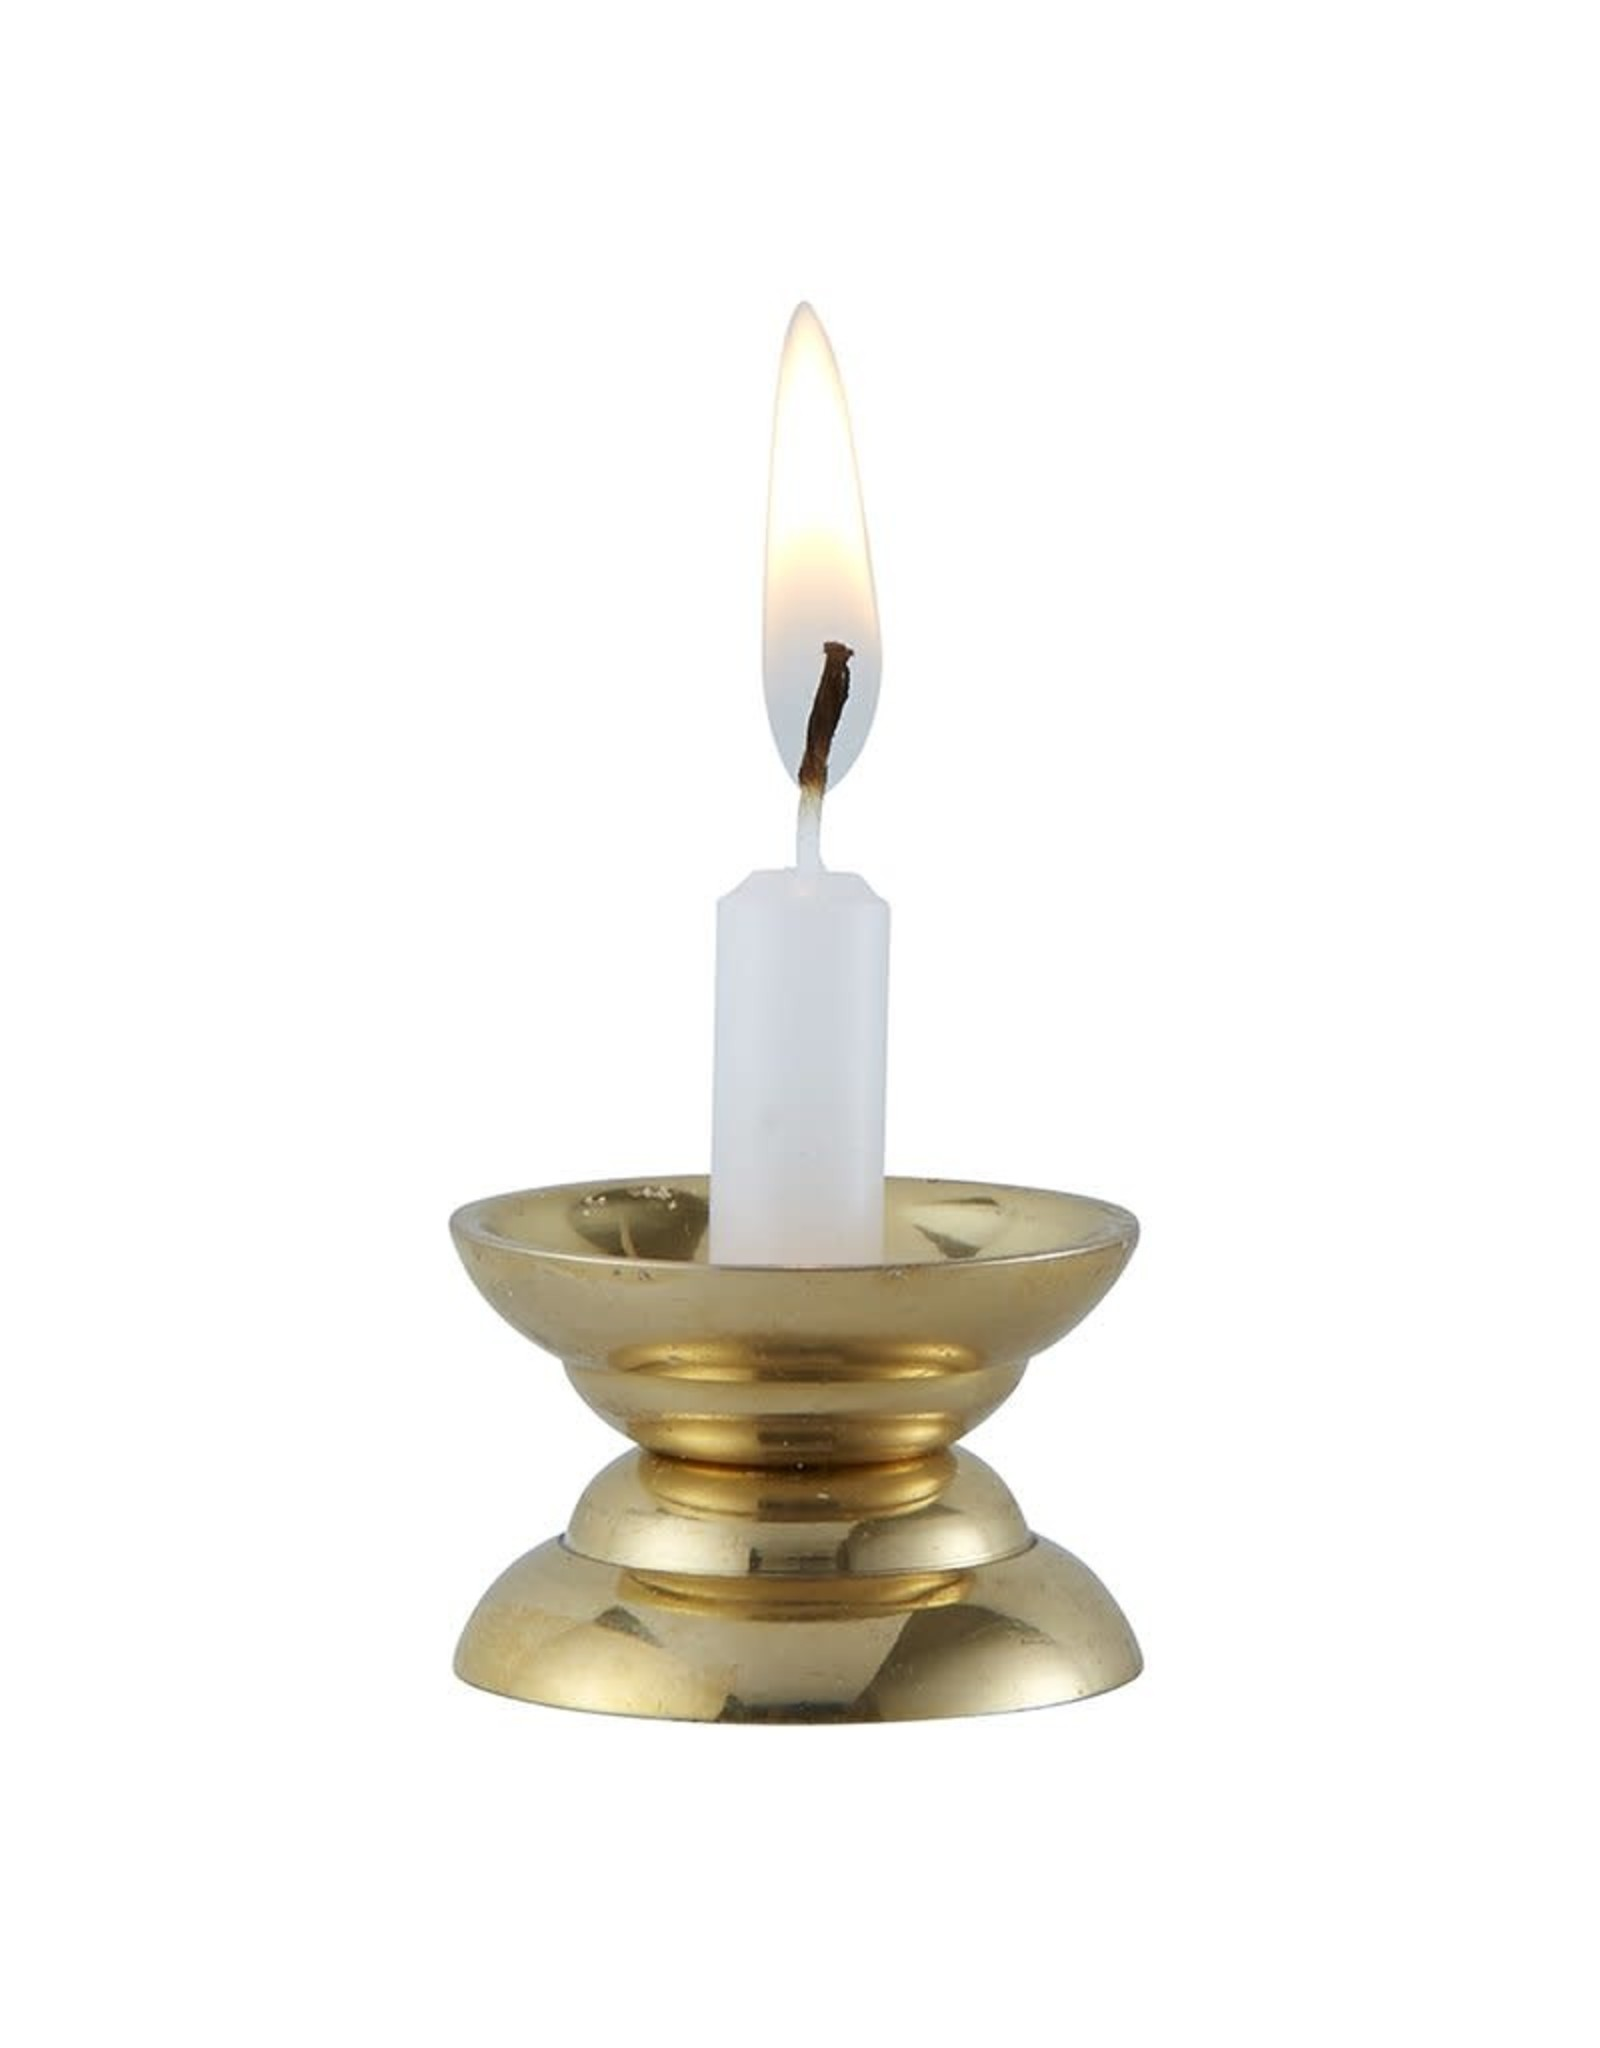 Christian Brands 10 Minute Candle Holder